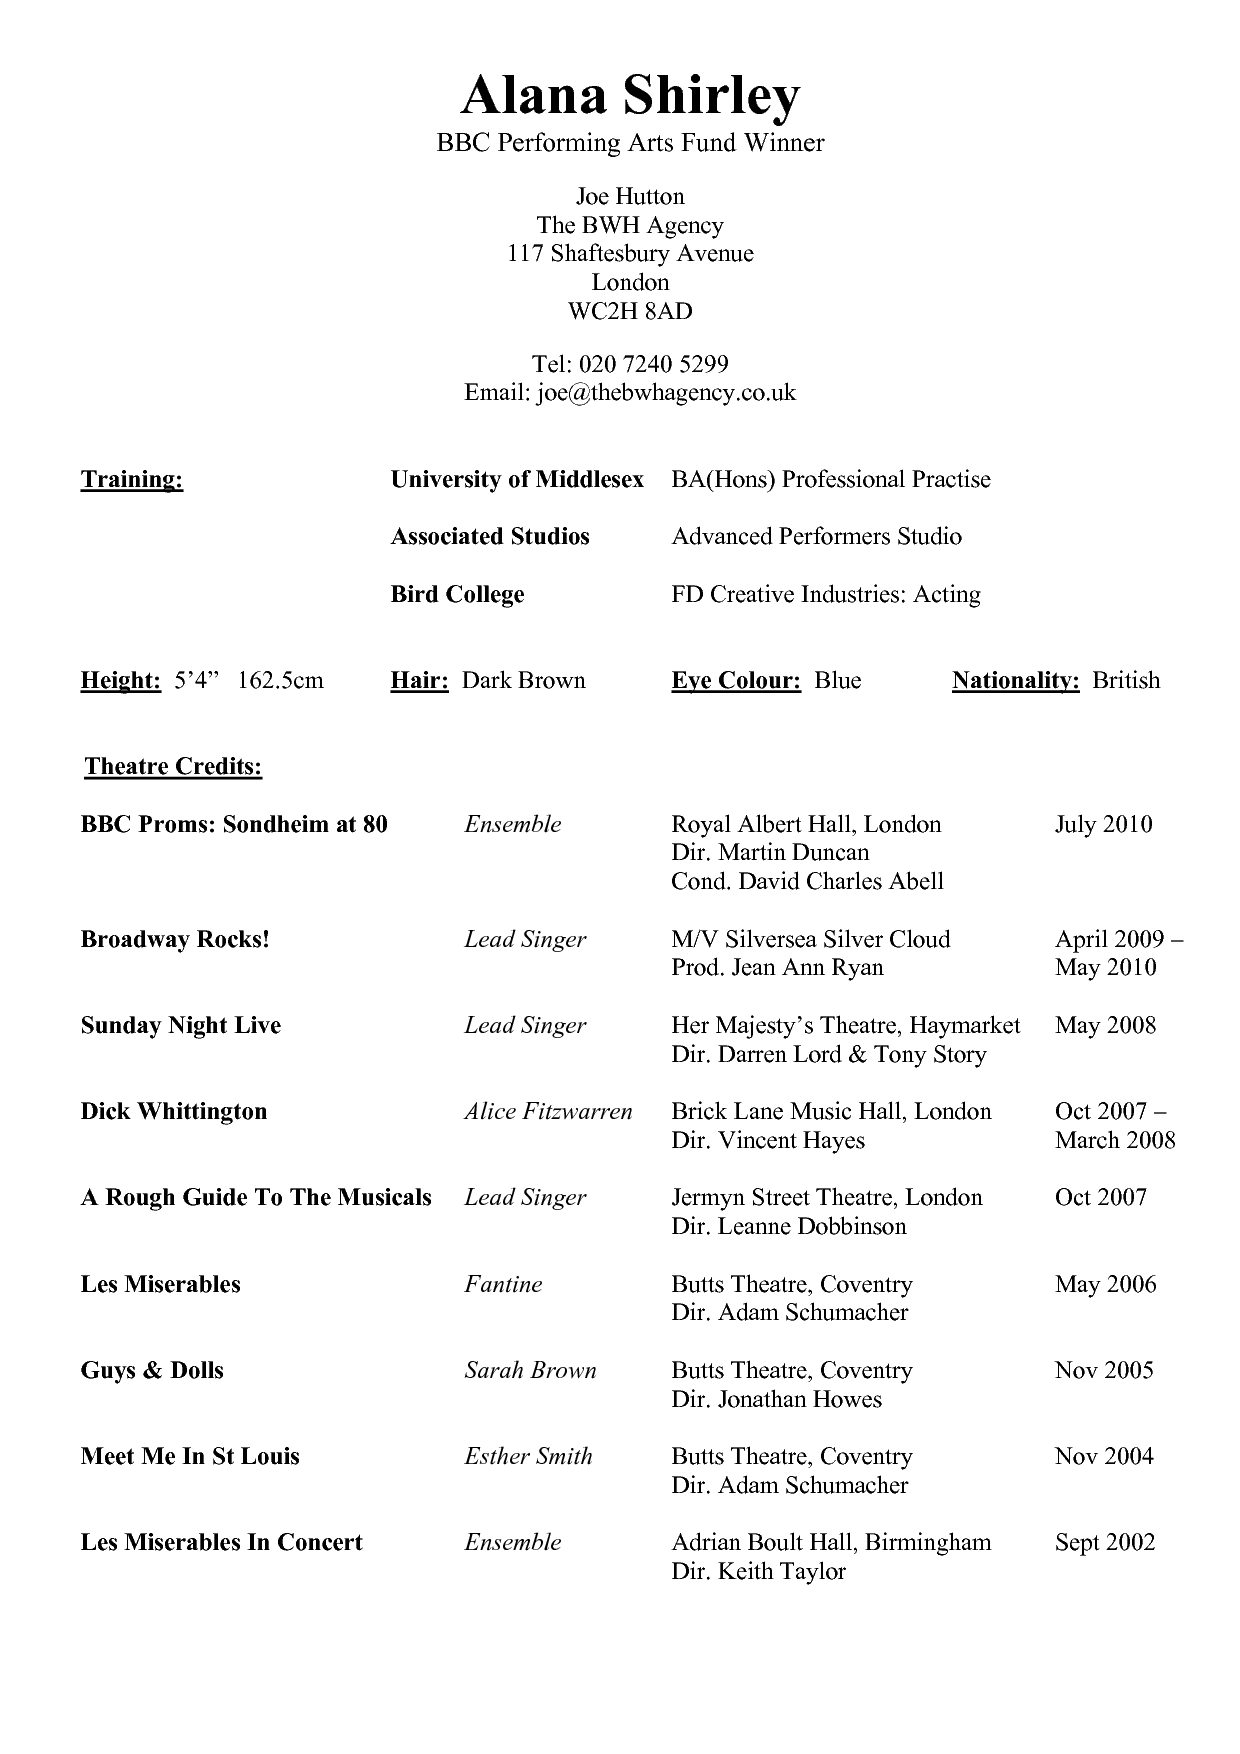 Resume Template Example For Performing Arts With Theatre Credits